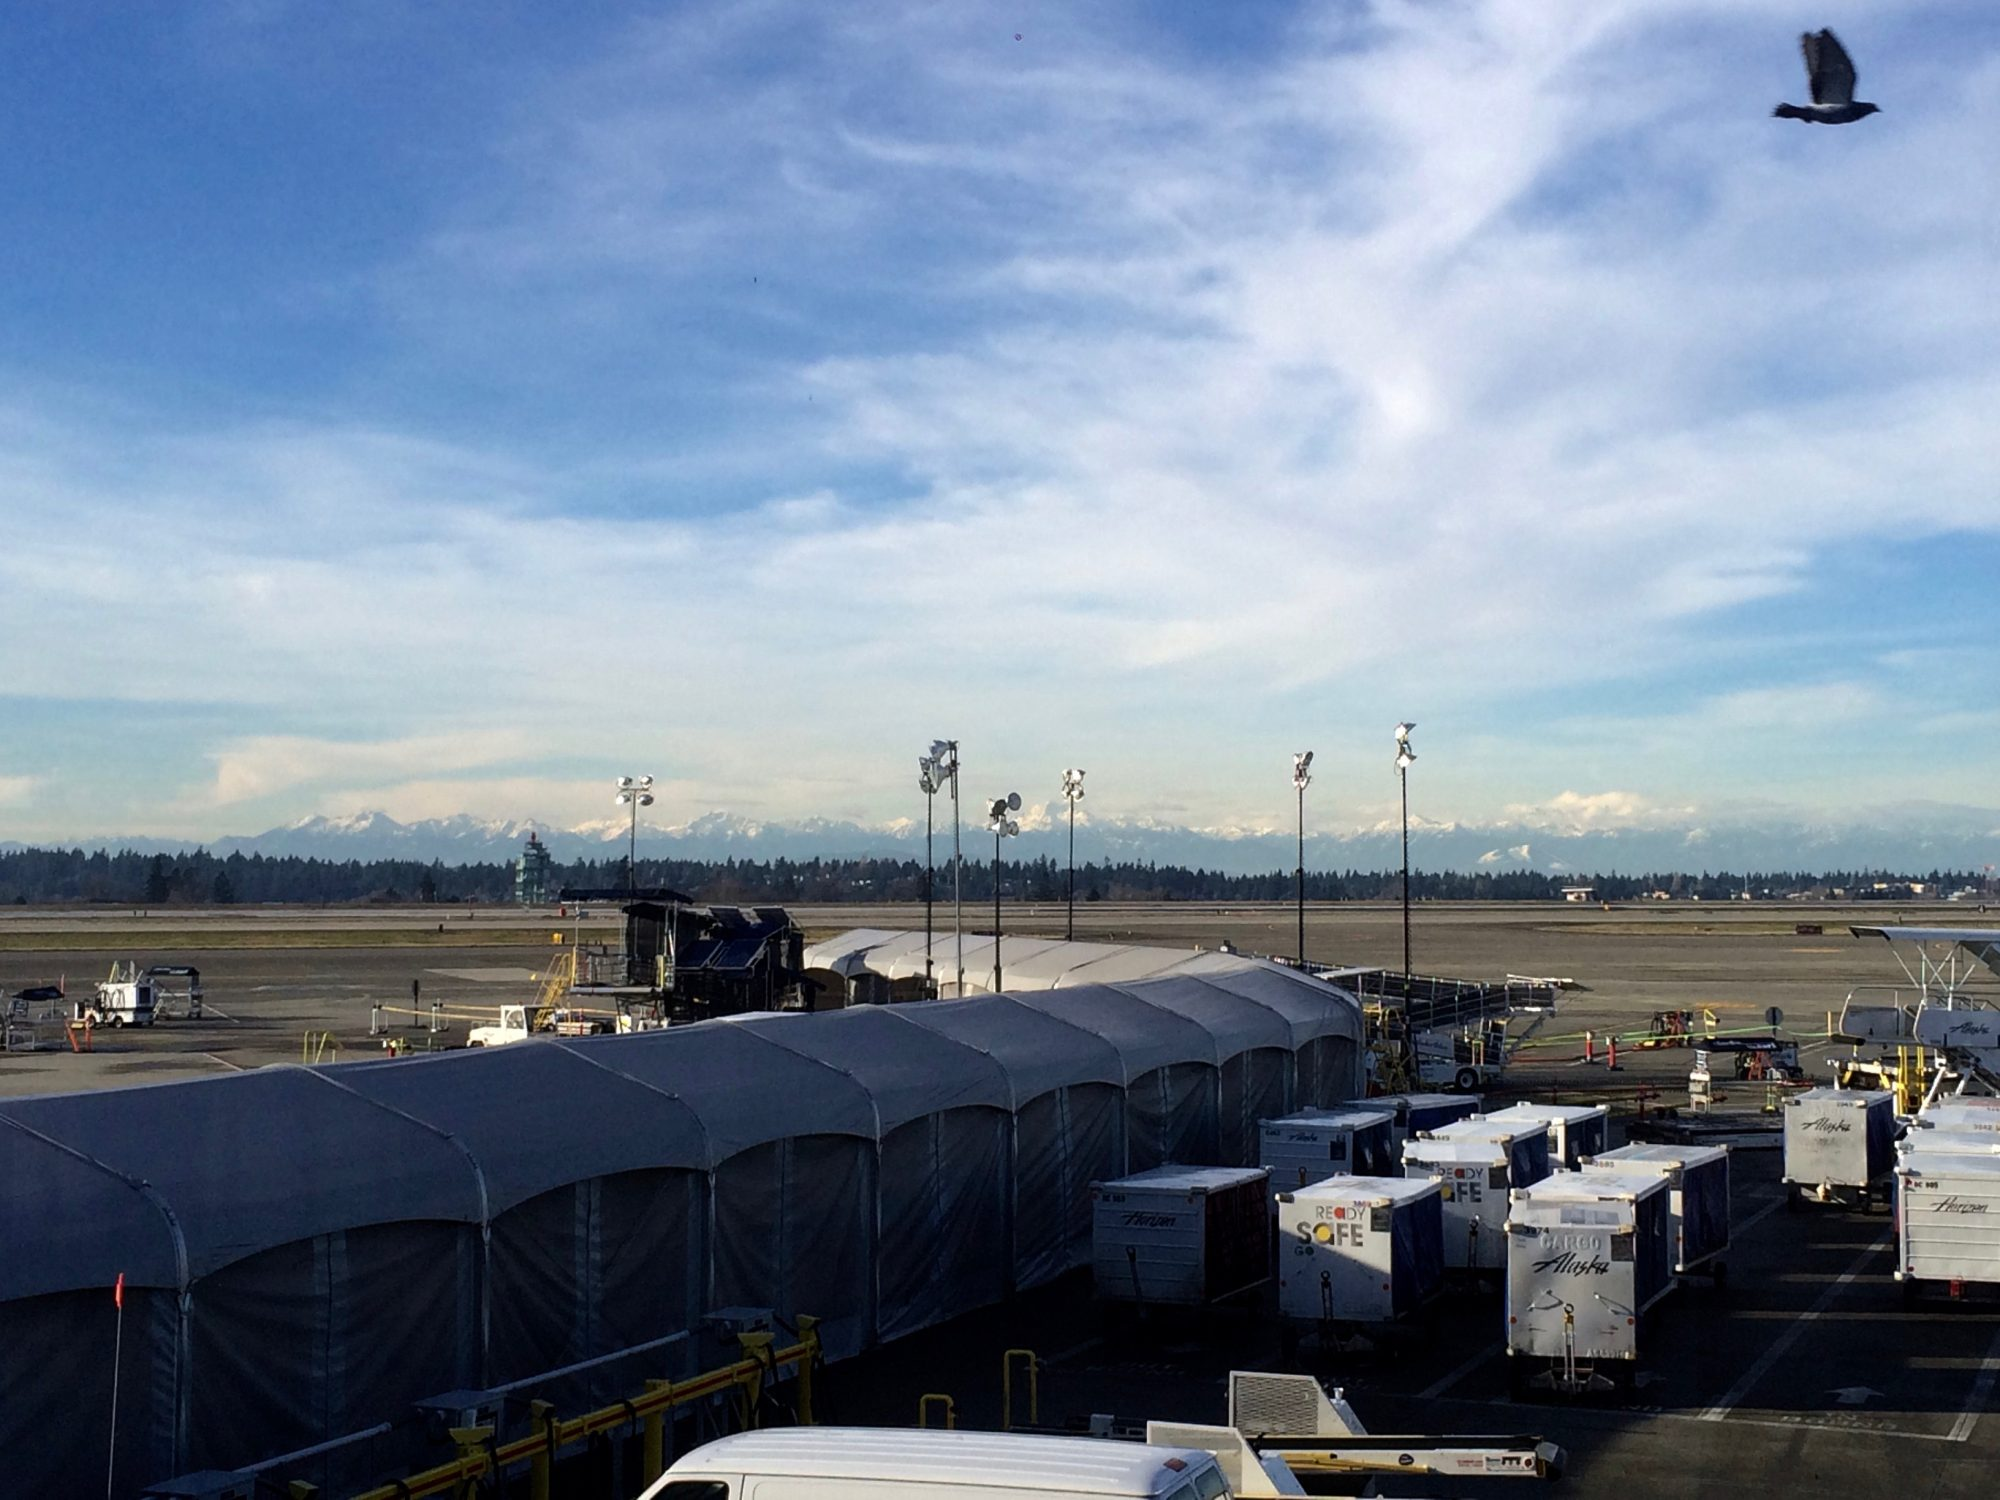 Glaciers atop The Olympic Mountain Range from the SeaTac airport